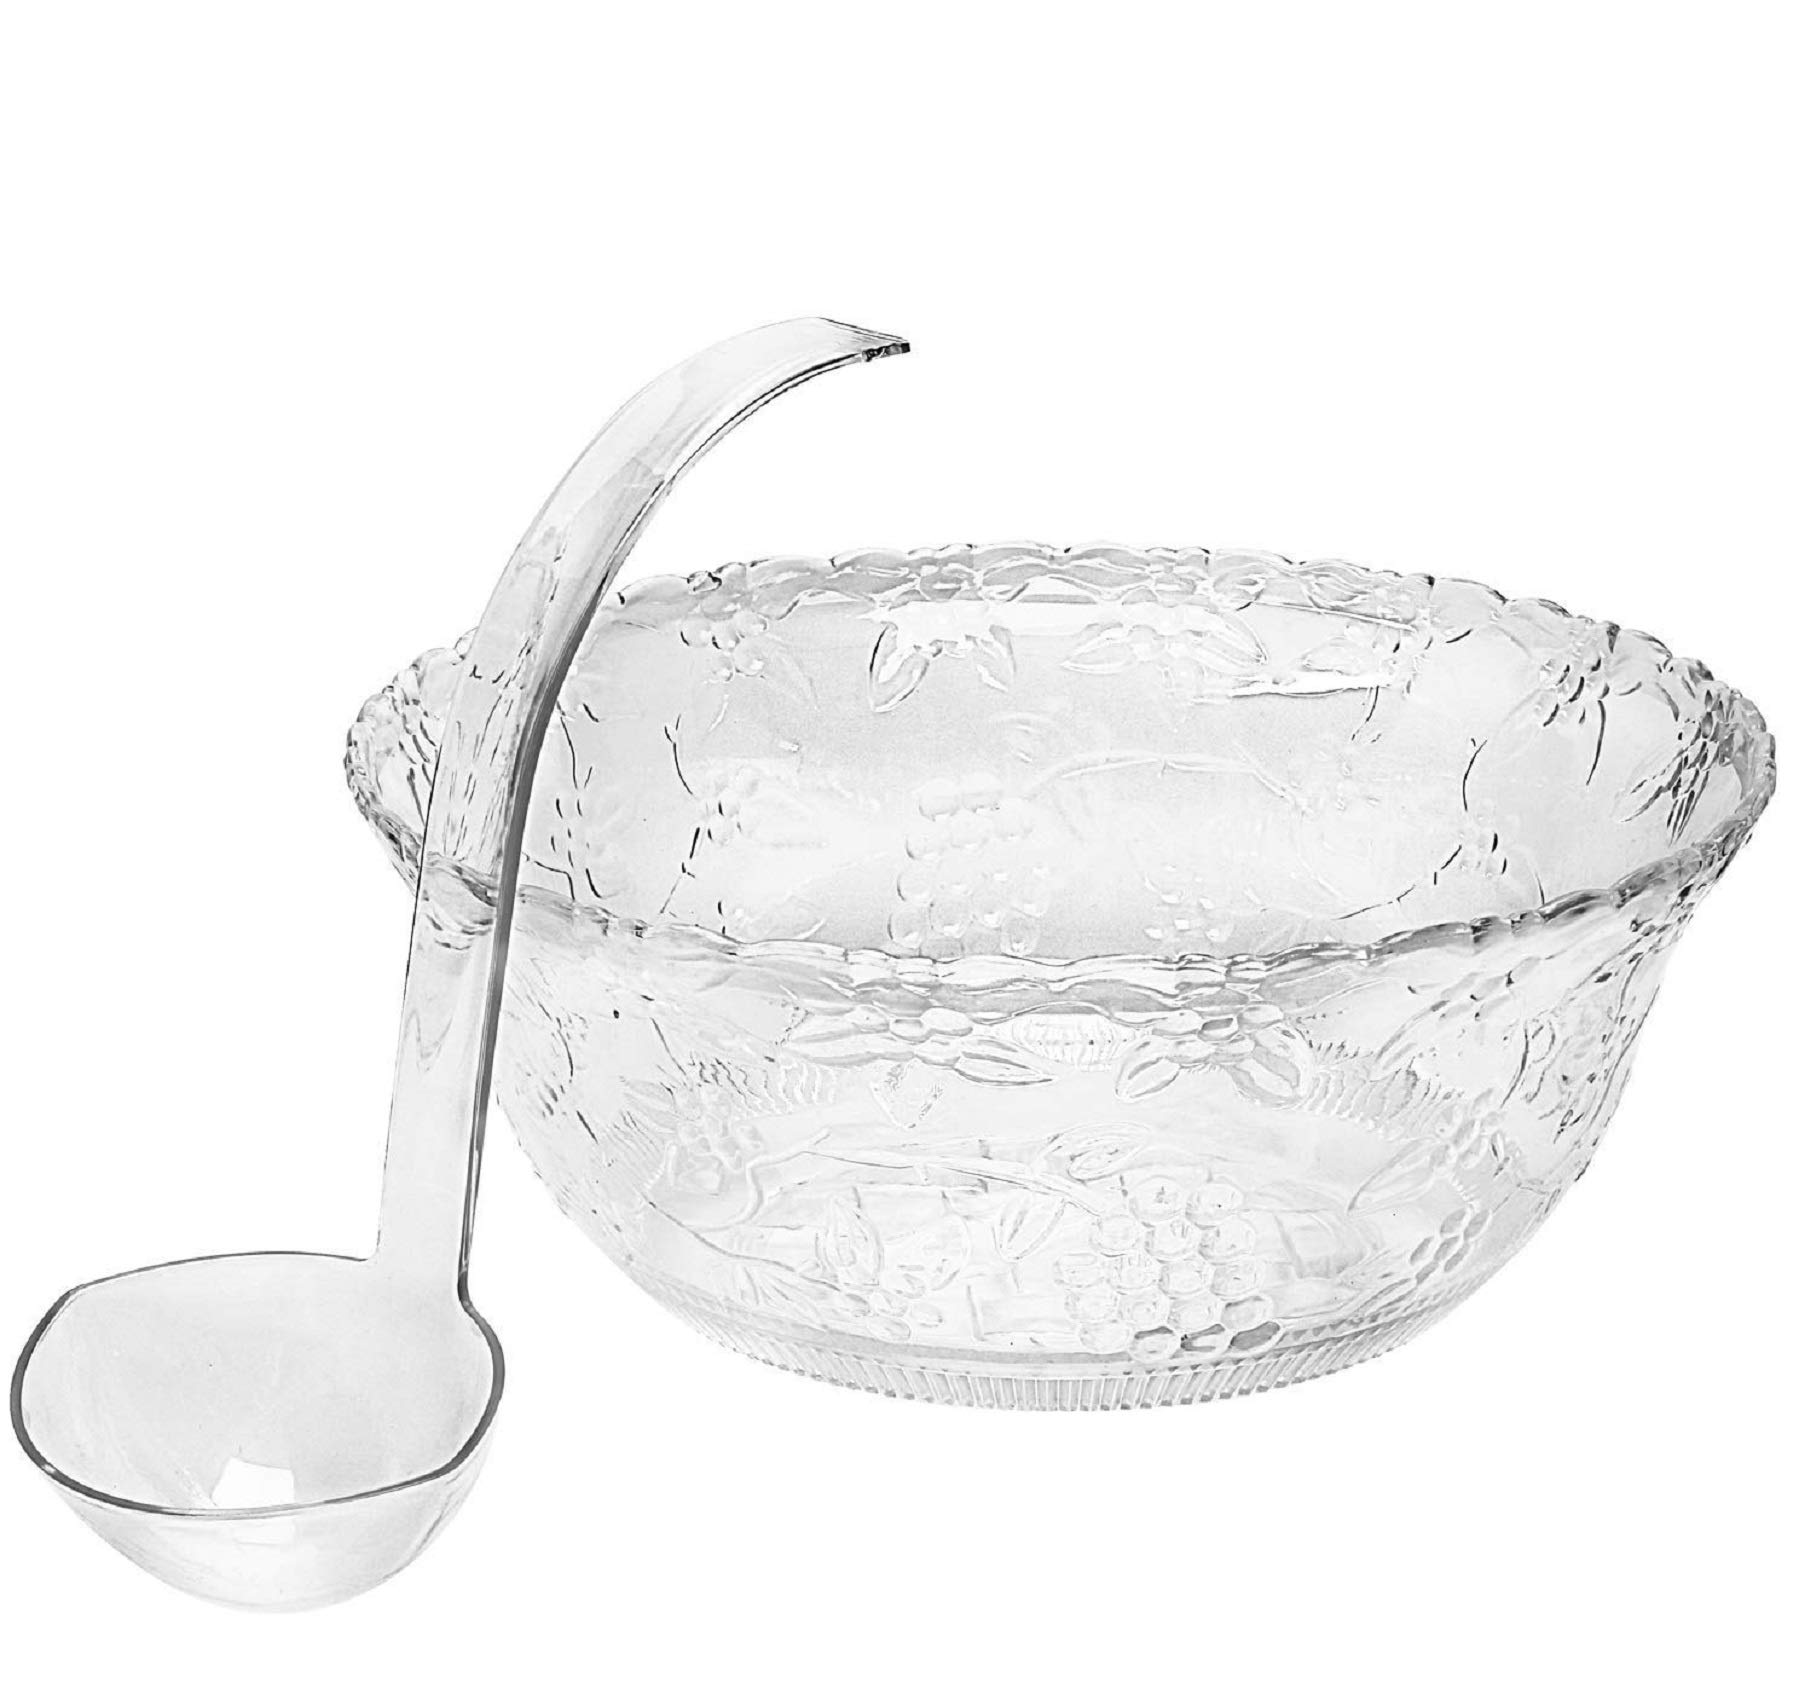 Clear Plastic Punch Bowl With Ladle - Large 2 Gallon Bowl With 5 oz Ladle